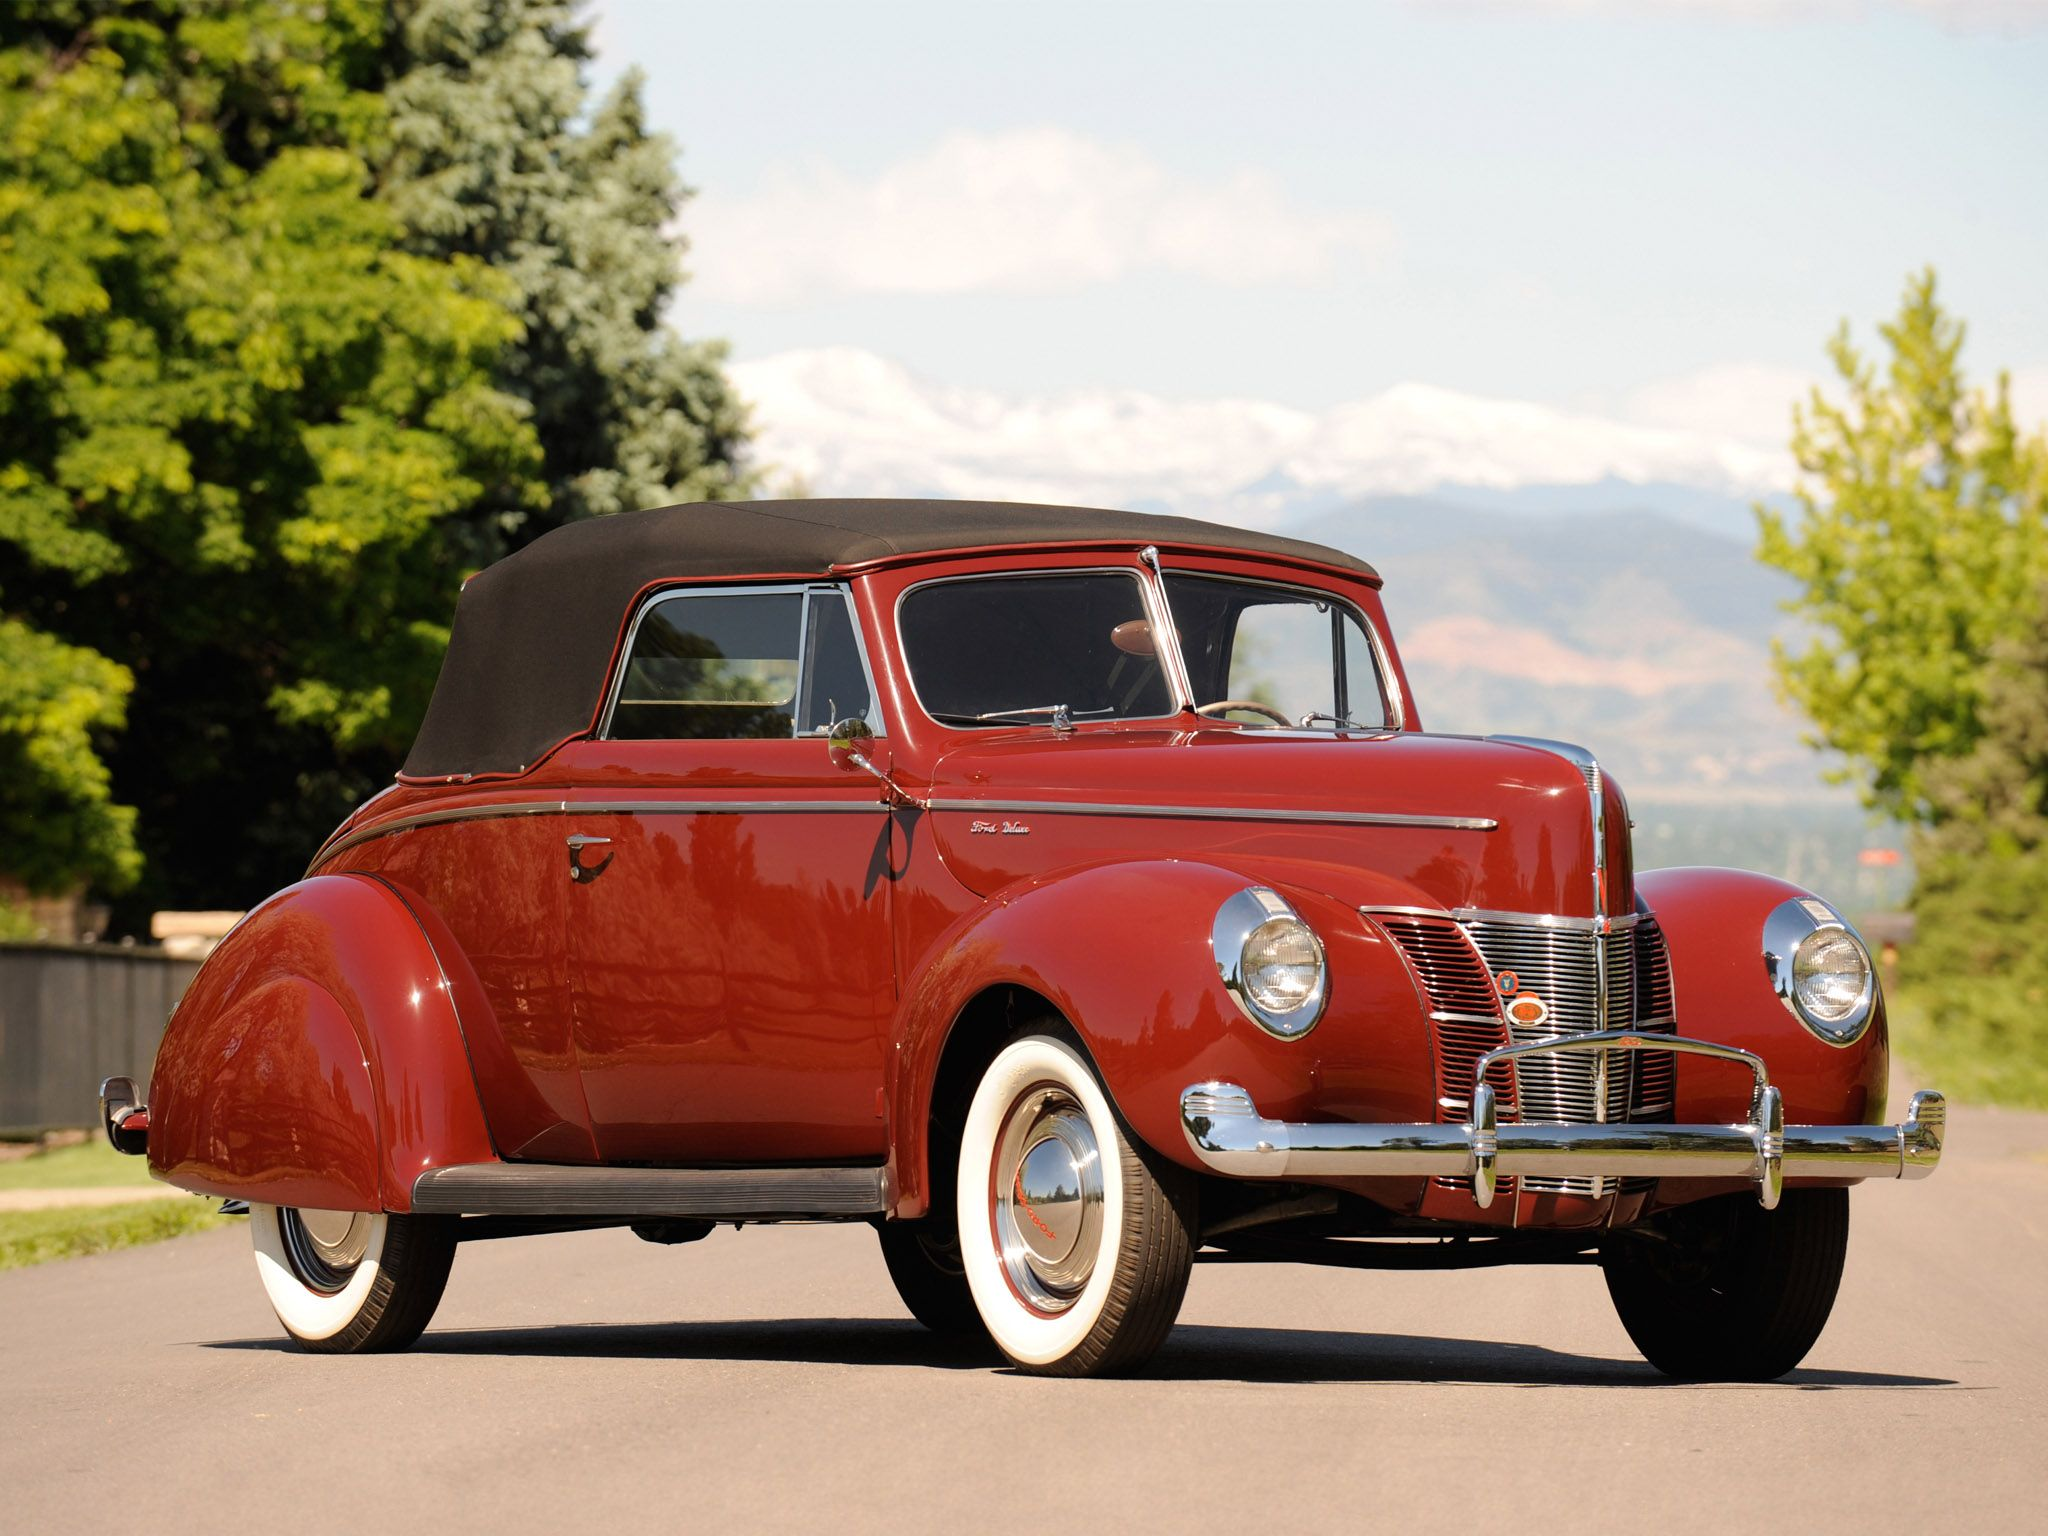 1940 Ford Deluxe Convertible Coupe Retro Wallpaper 2048x1536 104568 Wallpaperup 1940 Ford Classic Cars Trucks Hot Rods Classic Cars Vintage